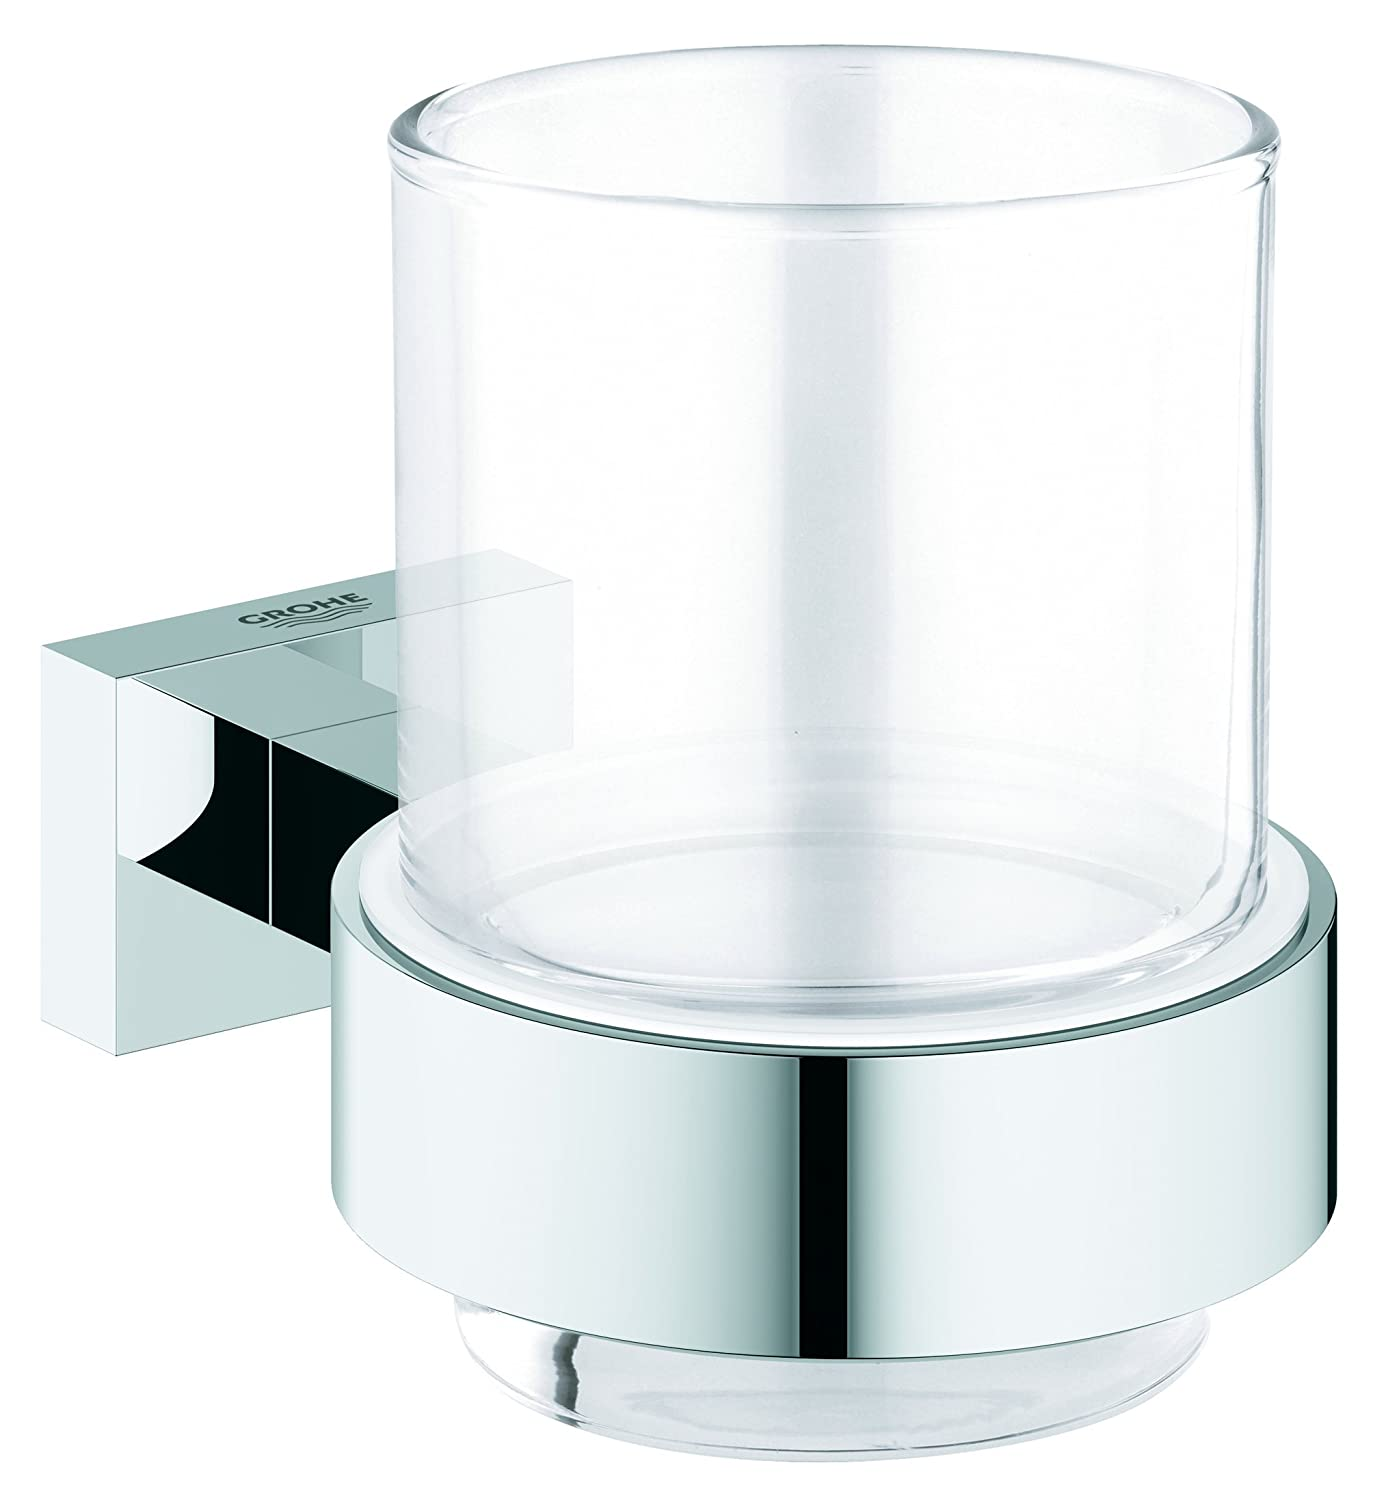 Grohe 40755001 Essentials Cube Glass Holder with Glass - Silver